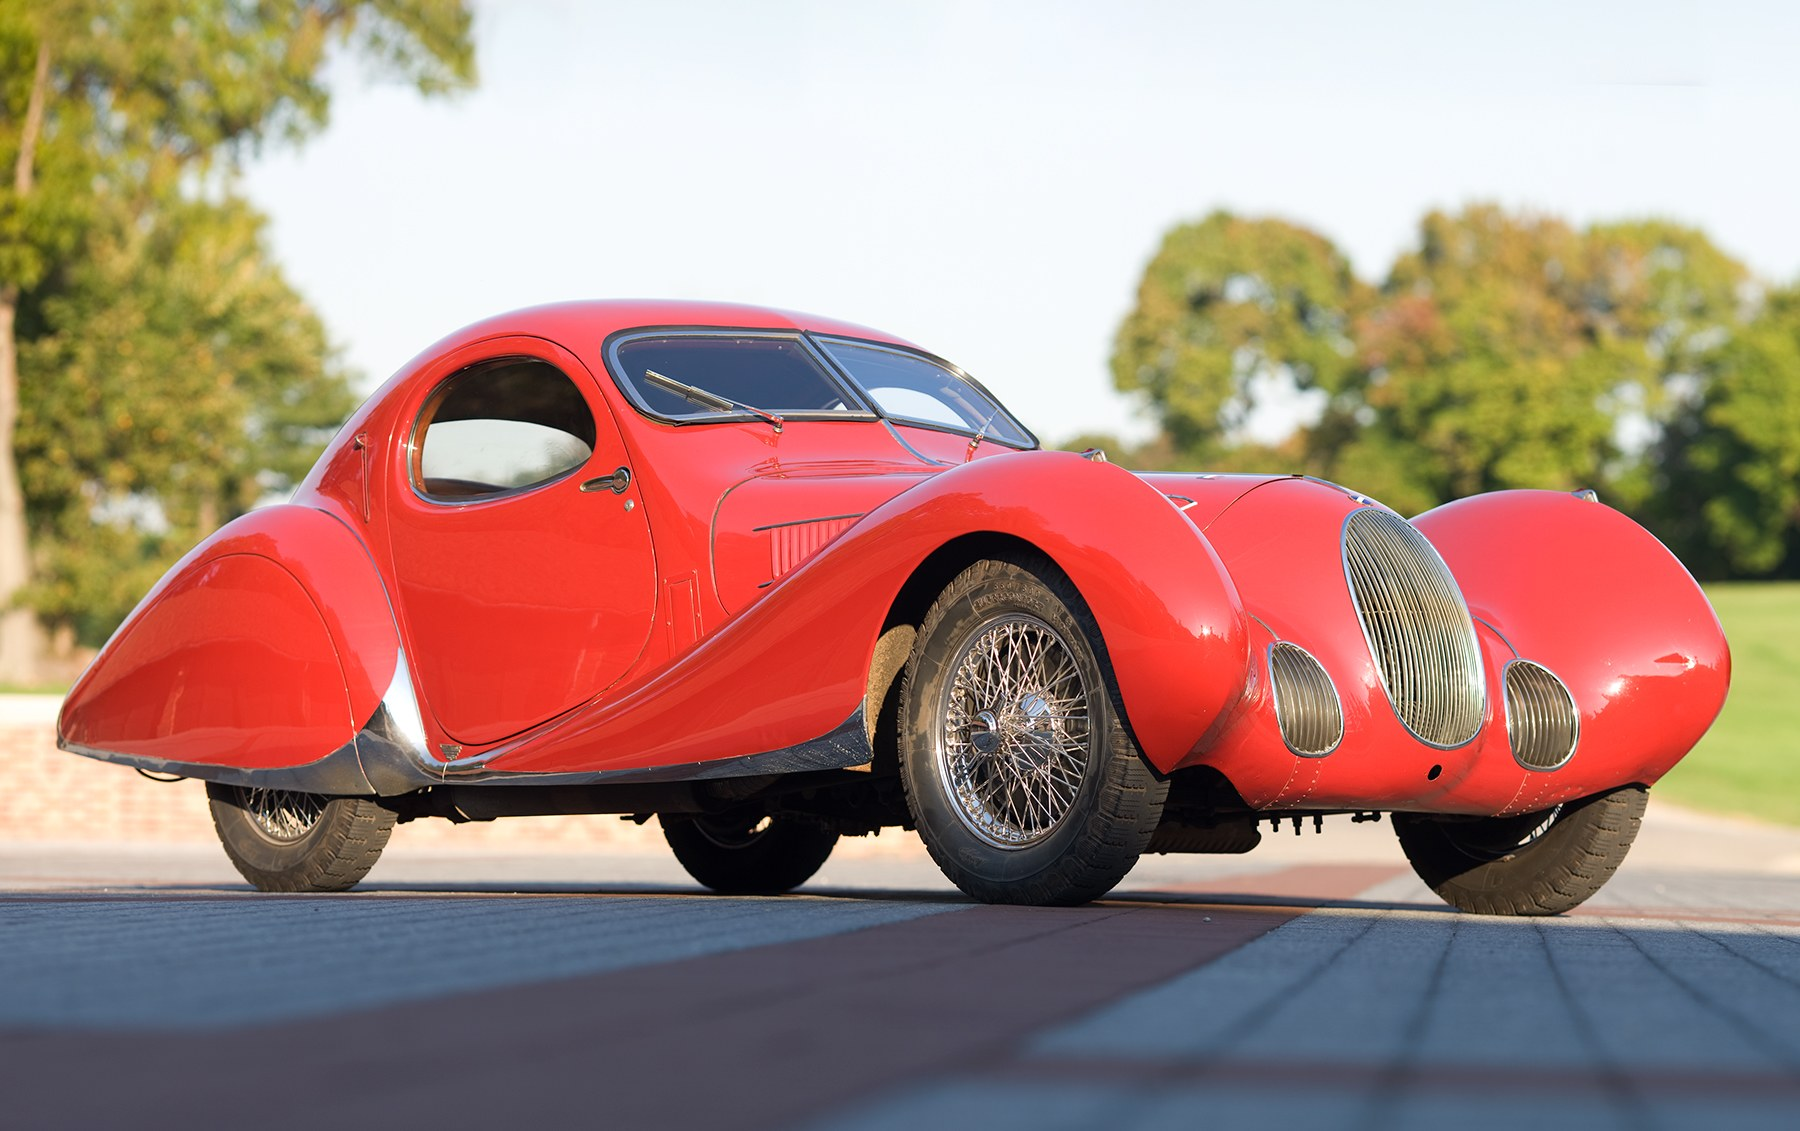 1937 Talbot-Lago T150 C SS Tear Drop Coupe